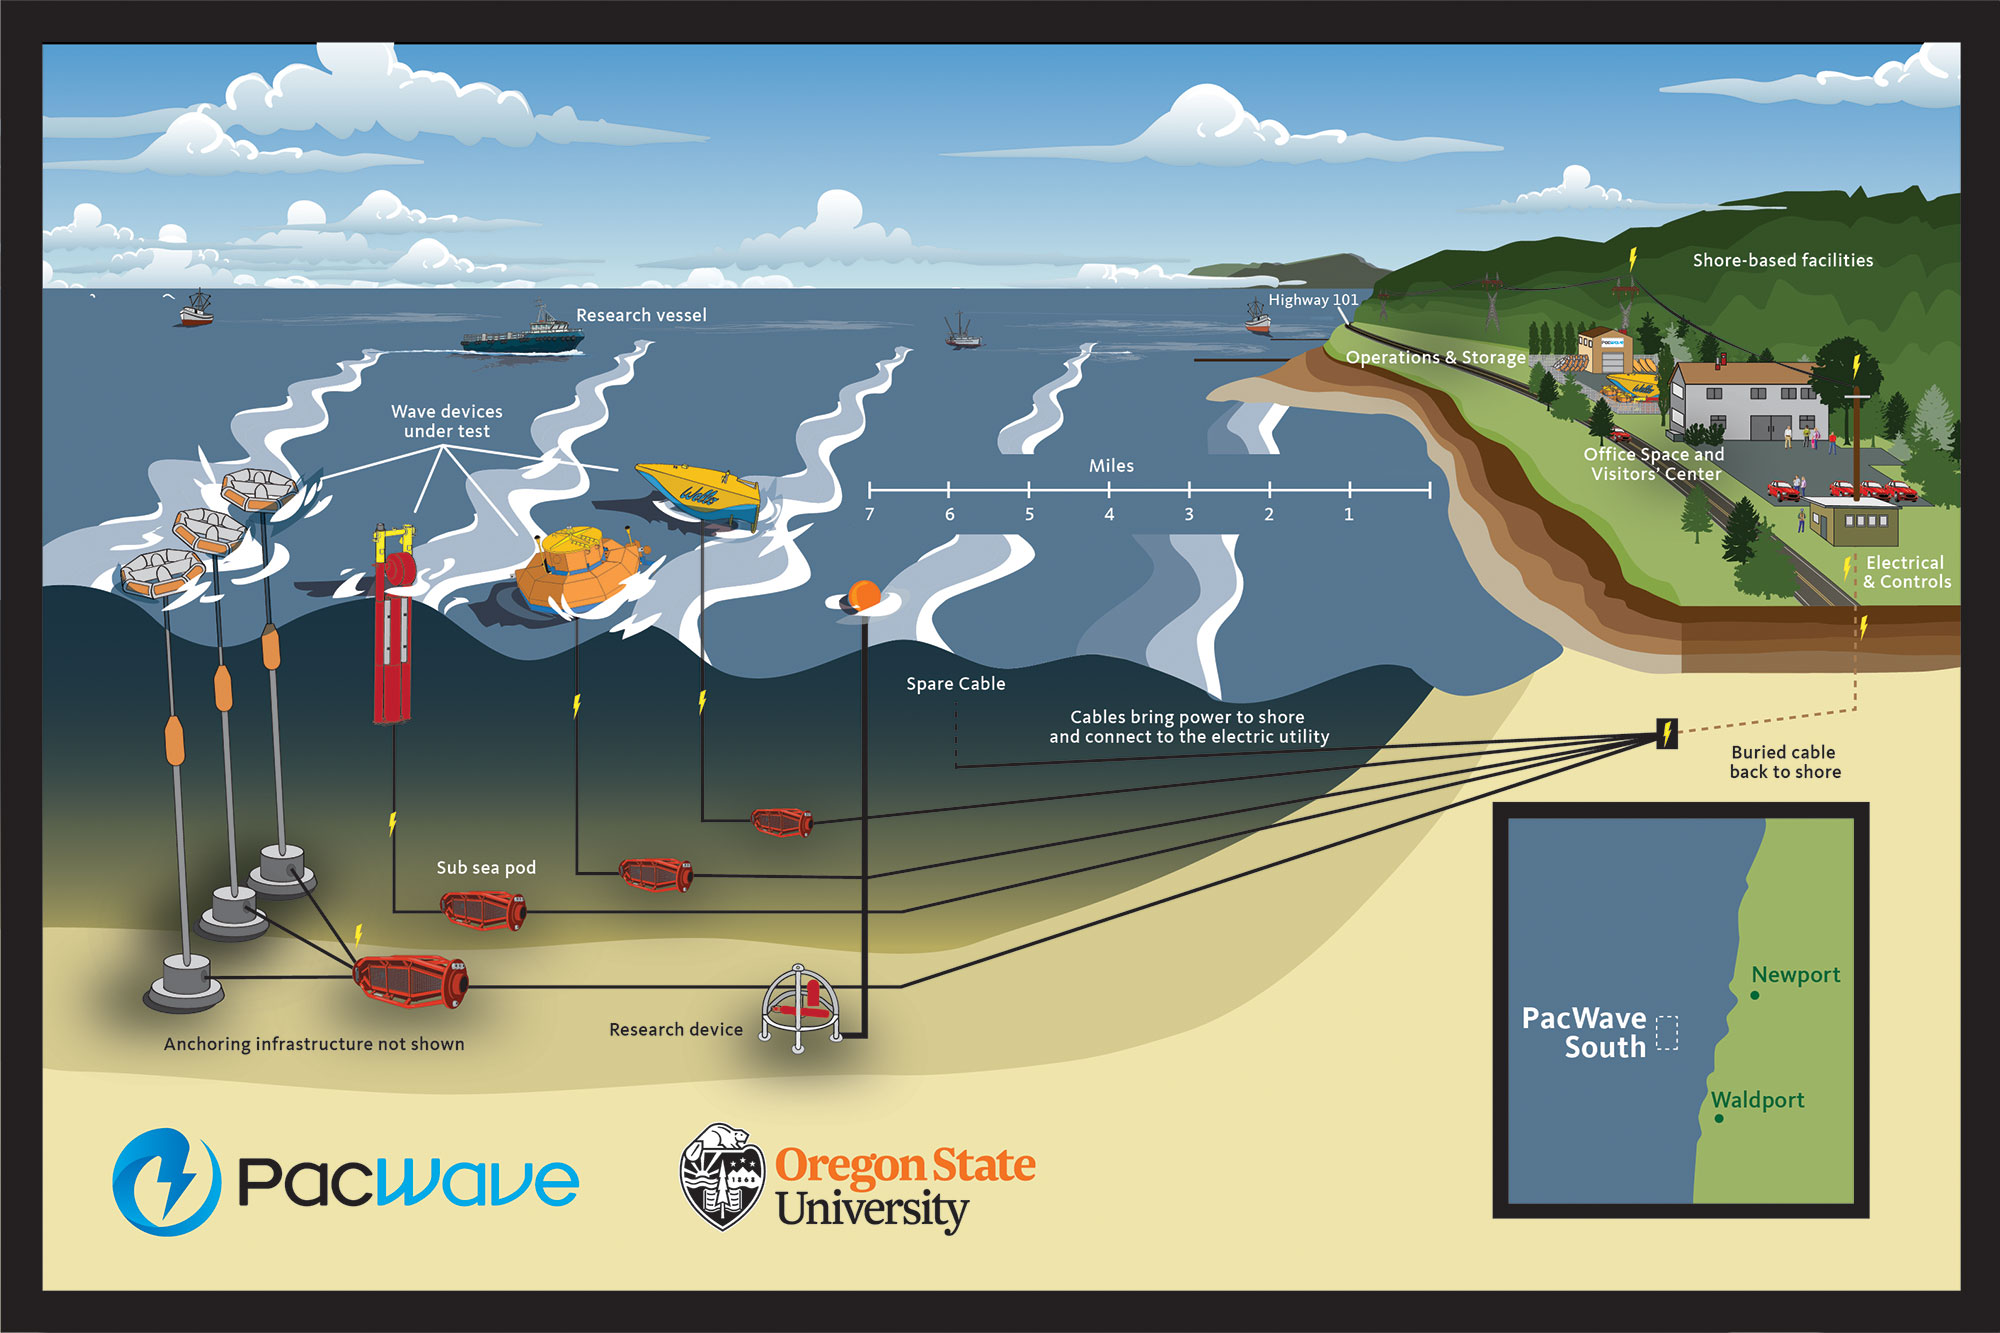 A rendering of PacWave South site